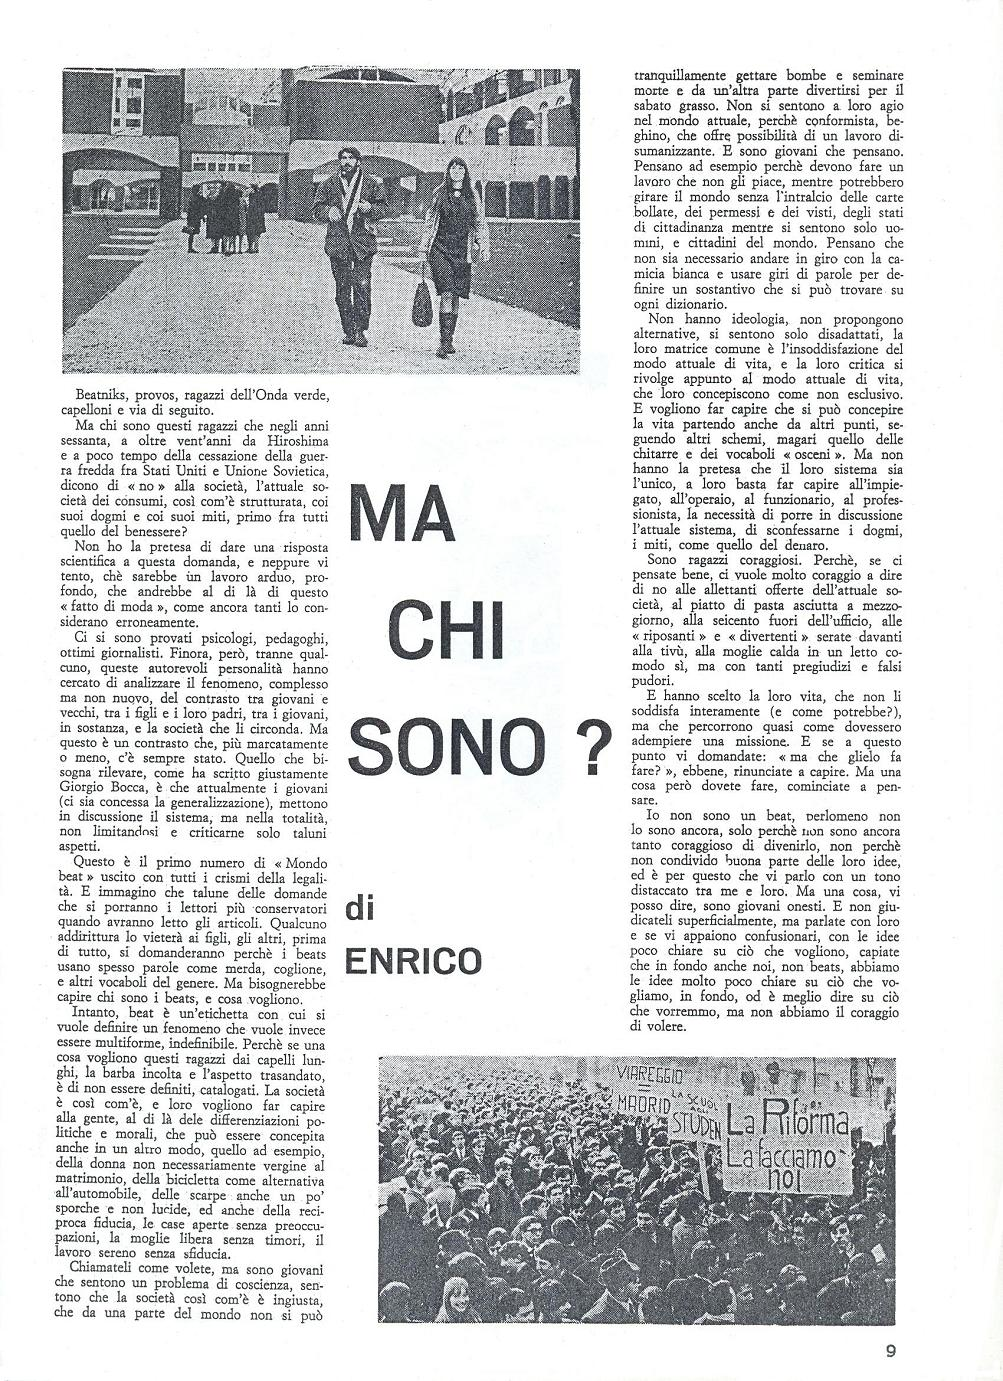 Enrico was a mysterious person, most probably a journalist working at Corriere della Sera,who criticized his newspaper from  the pages of Mondo Beat